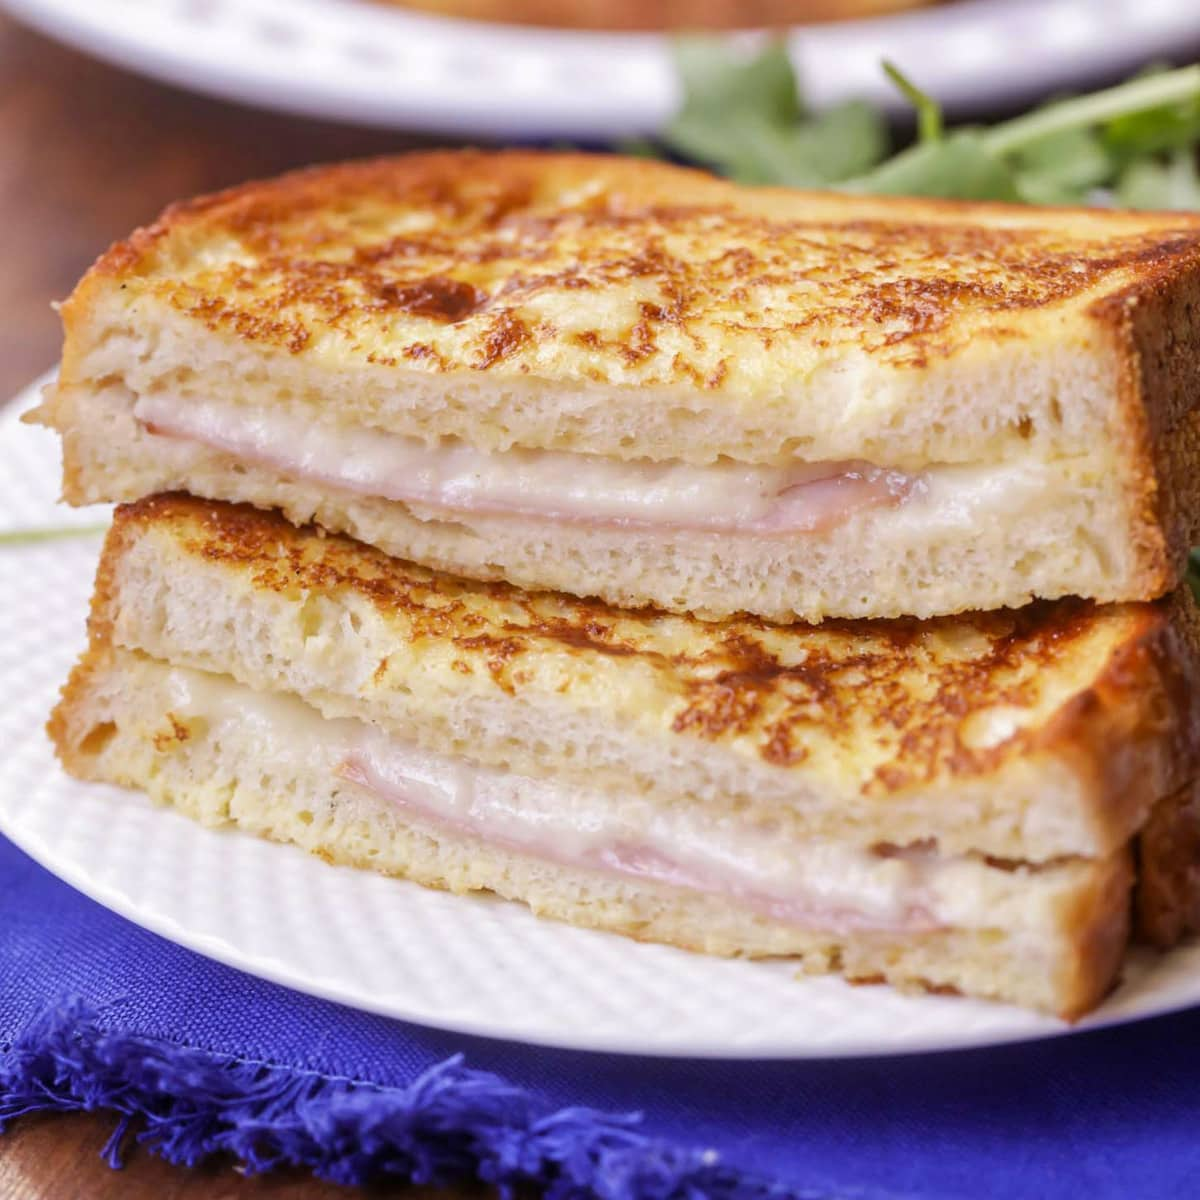 Croque Monsieur cut in half and placed on a white plate